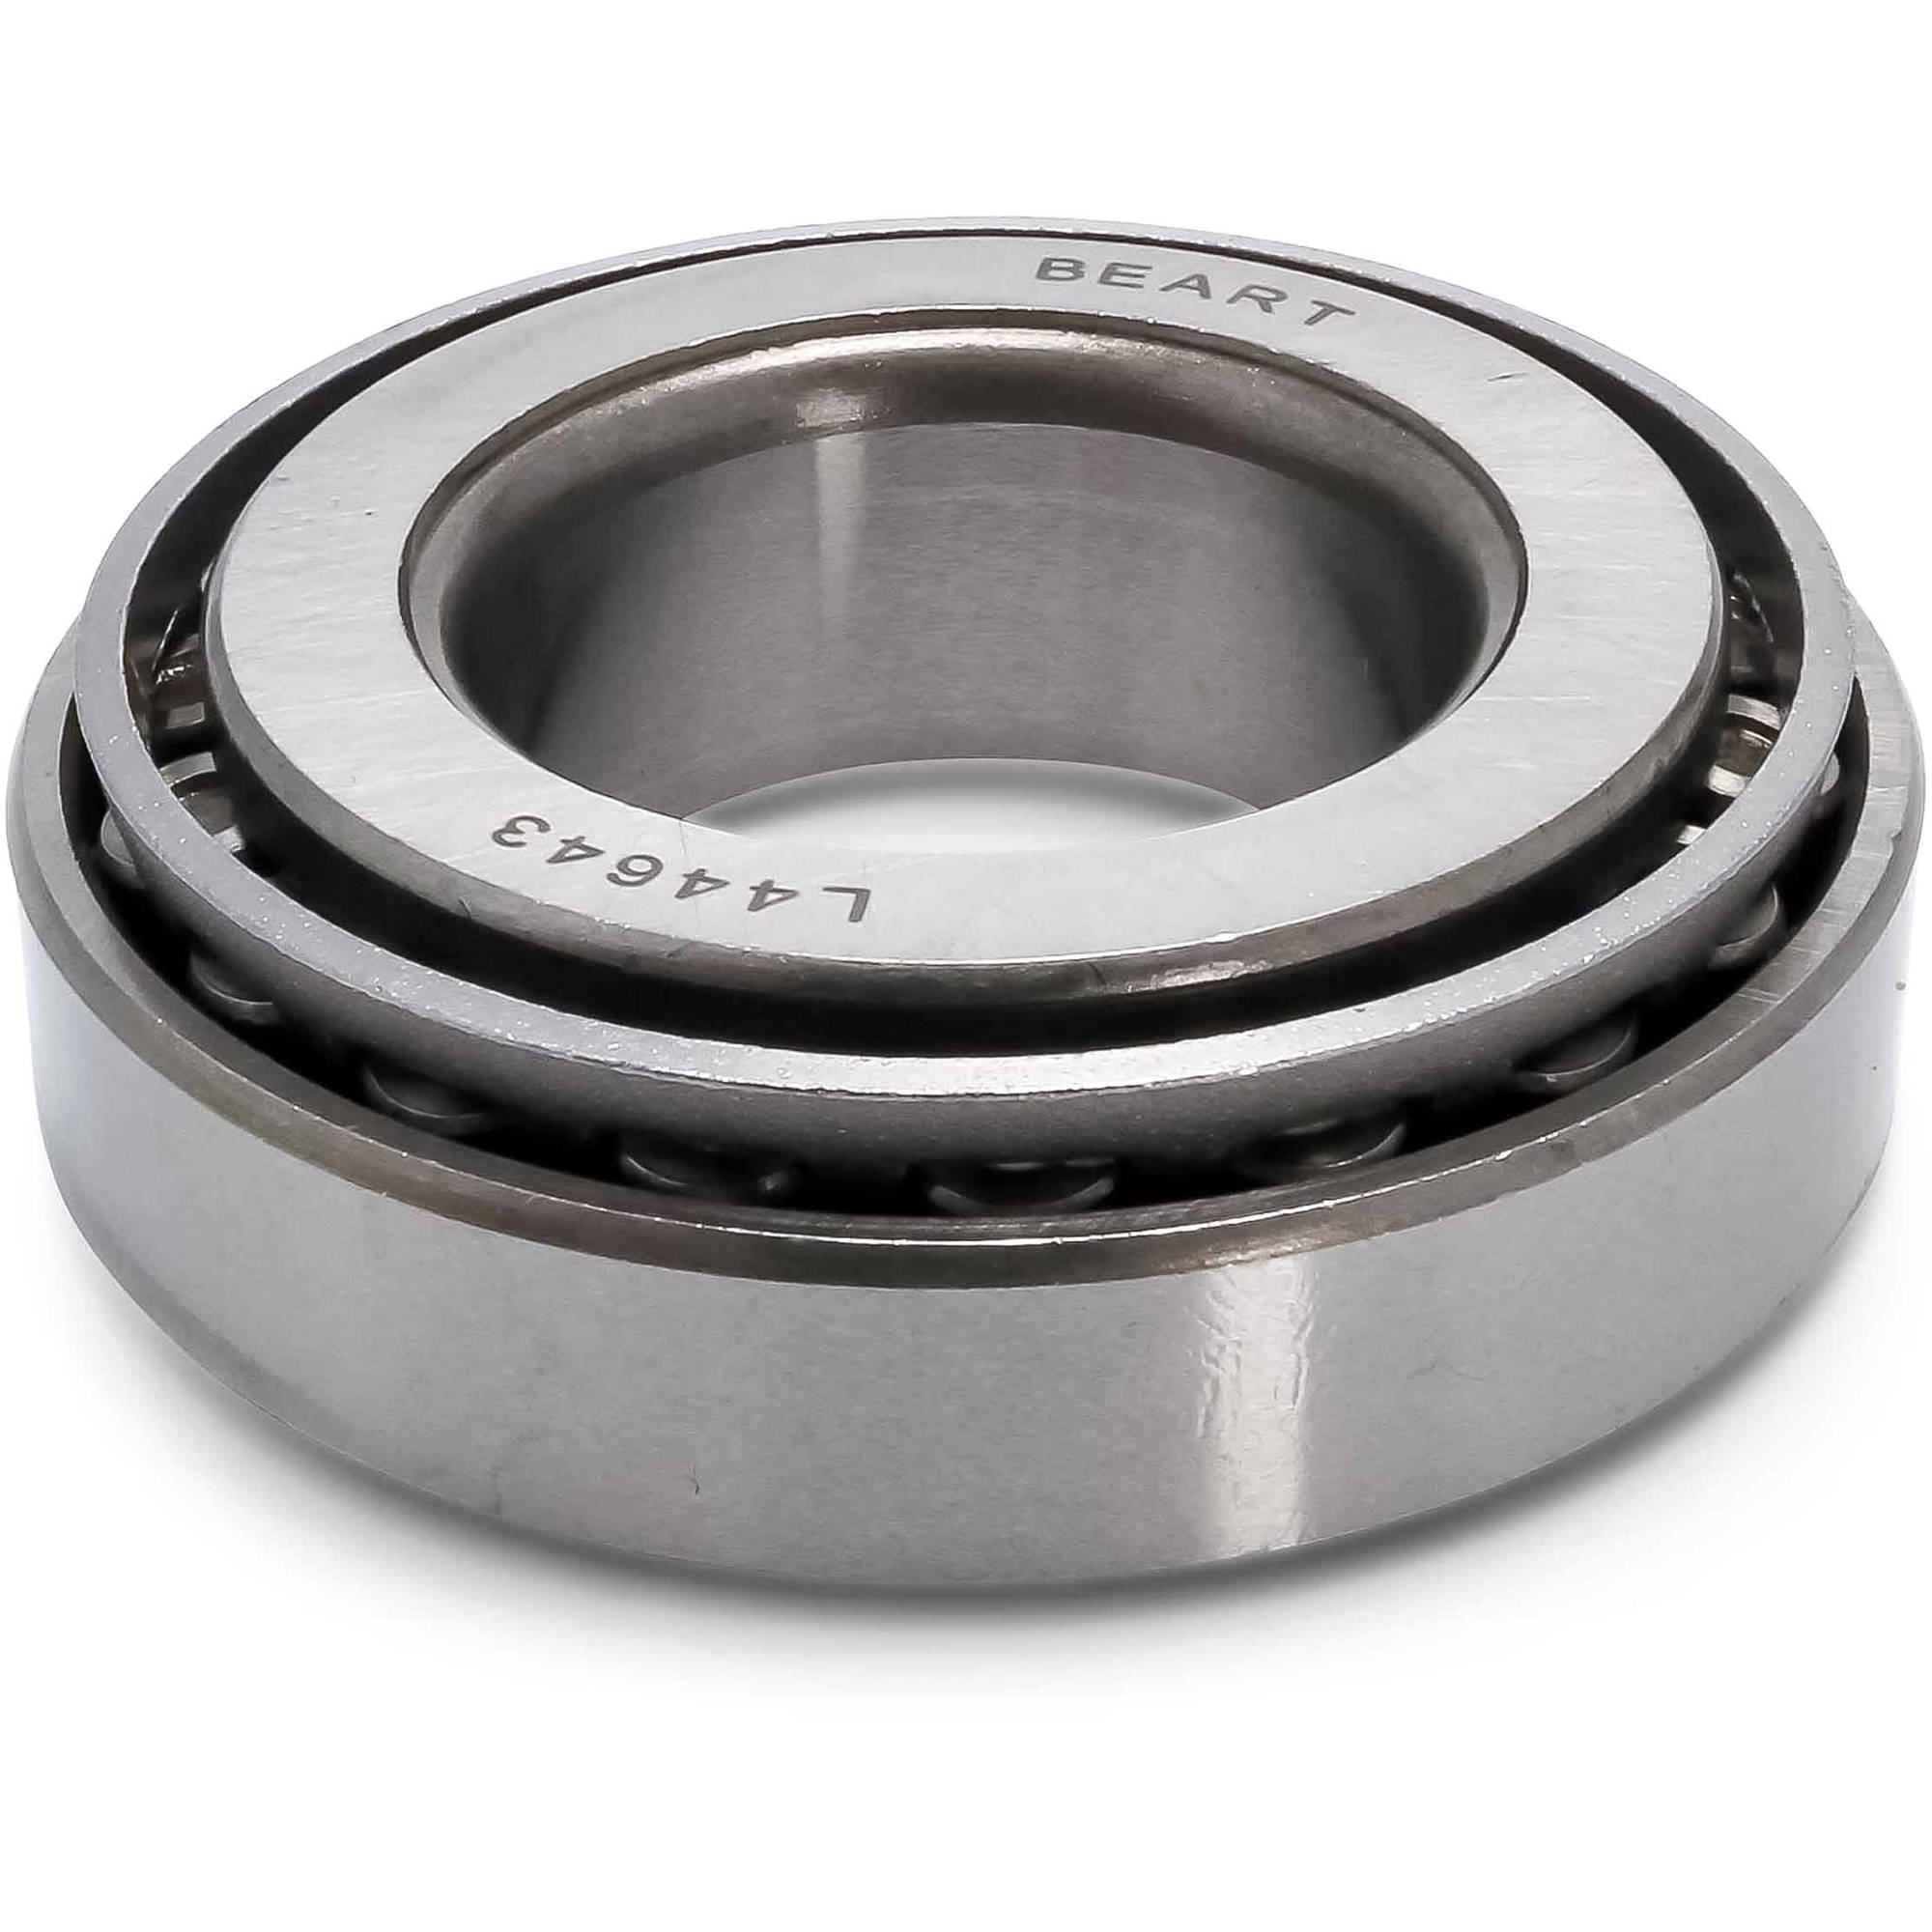 Camco 50050 Wheel Bearing Kit 1 With Dust Caps